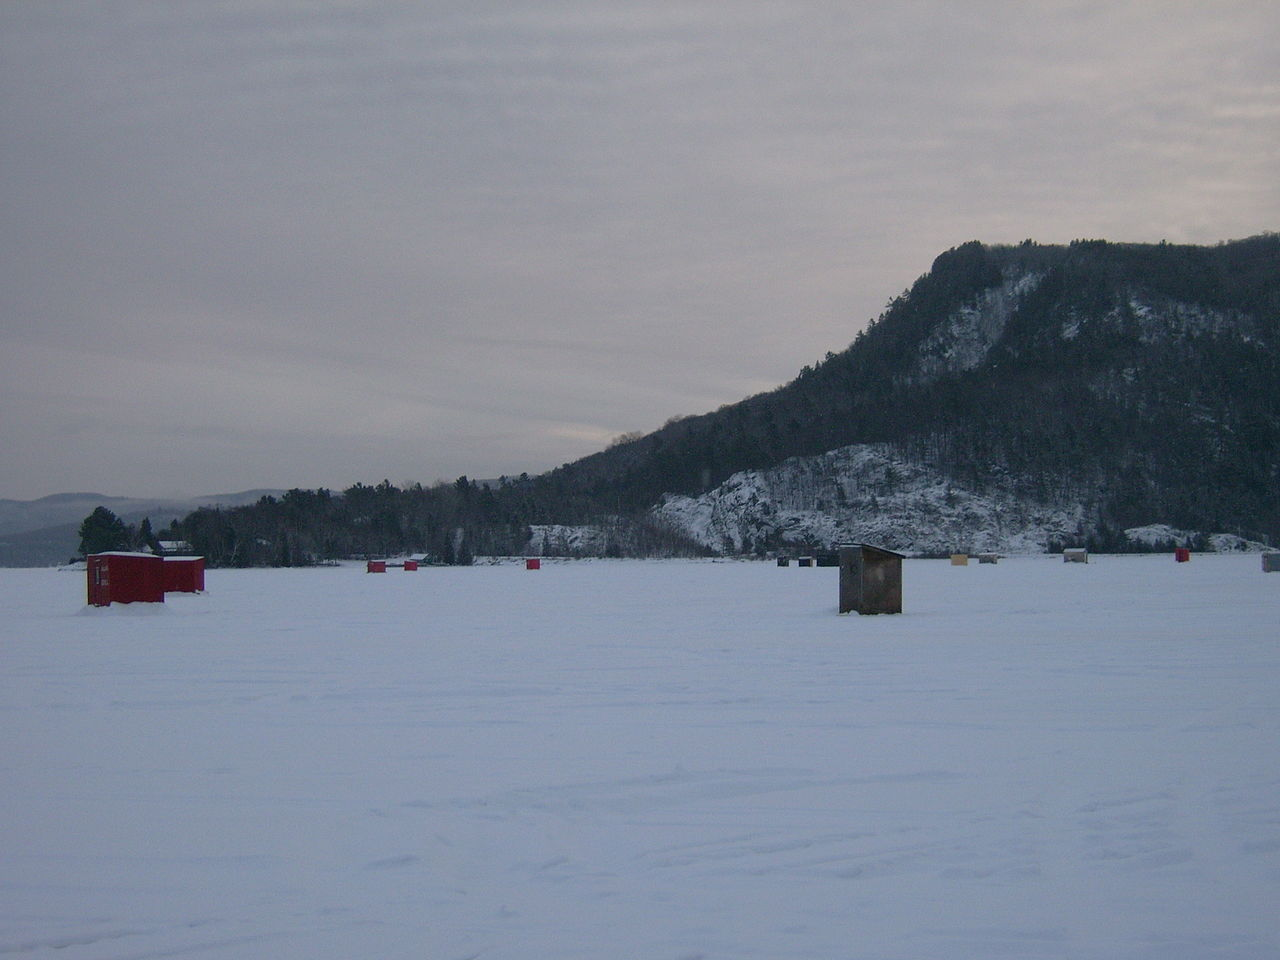 Original file 3 264 2 448 pixels file size mb for Ice fishing huts